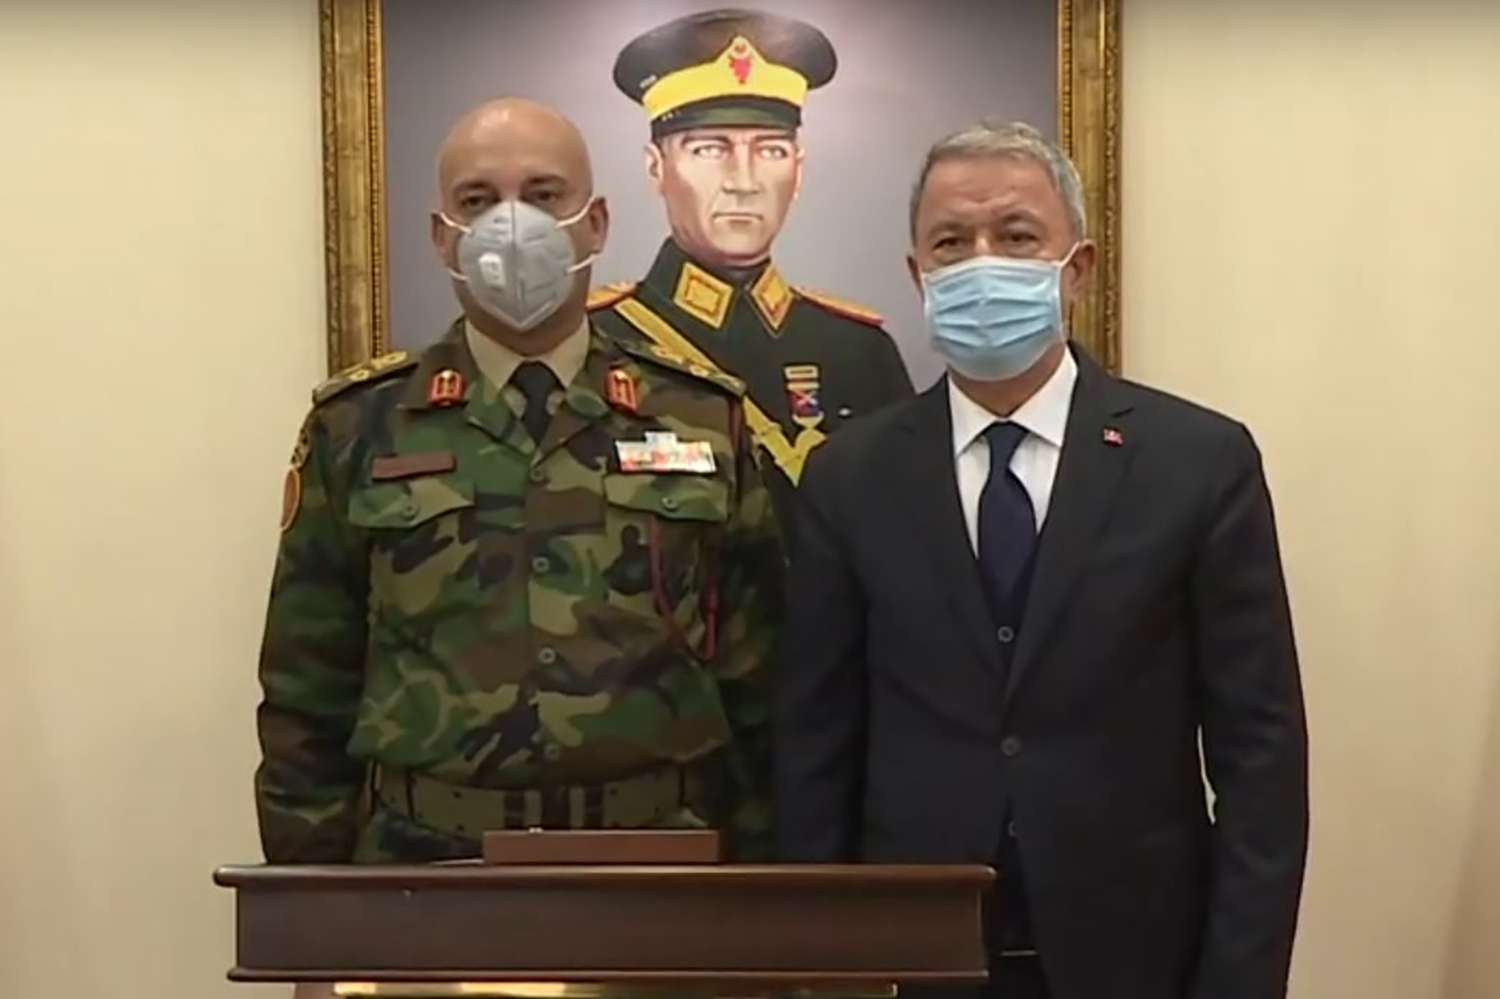 Mohamed Al Haddad (left), Libyan chief of staff, during a meeting with Turkish Defence Minister Hulusi Akar in October 2020.